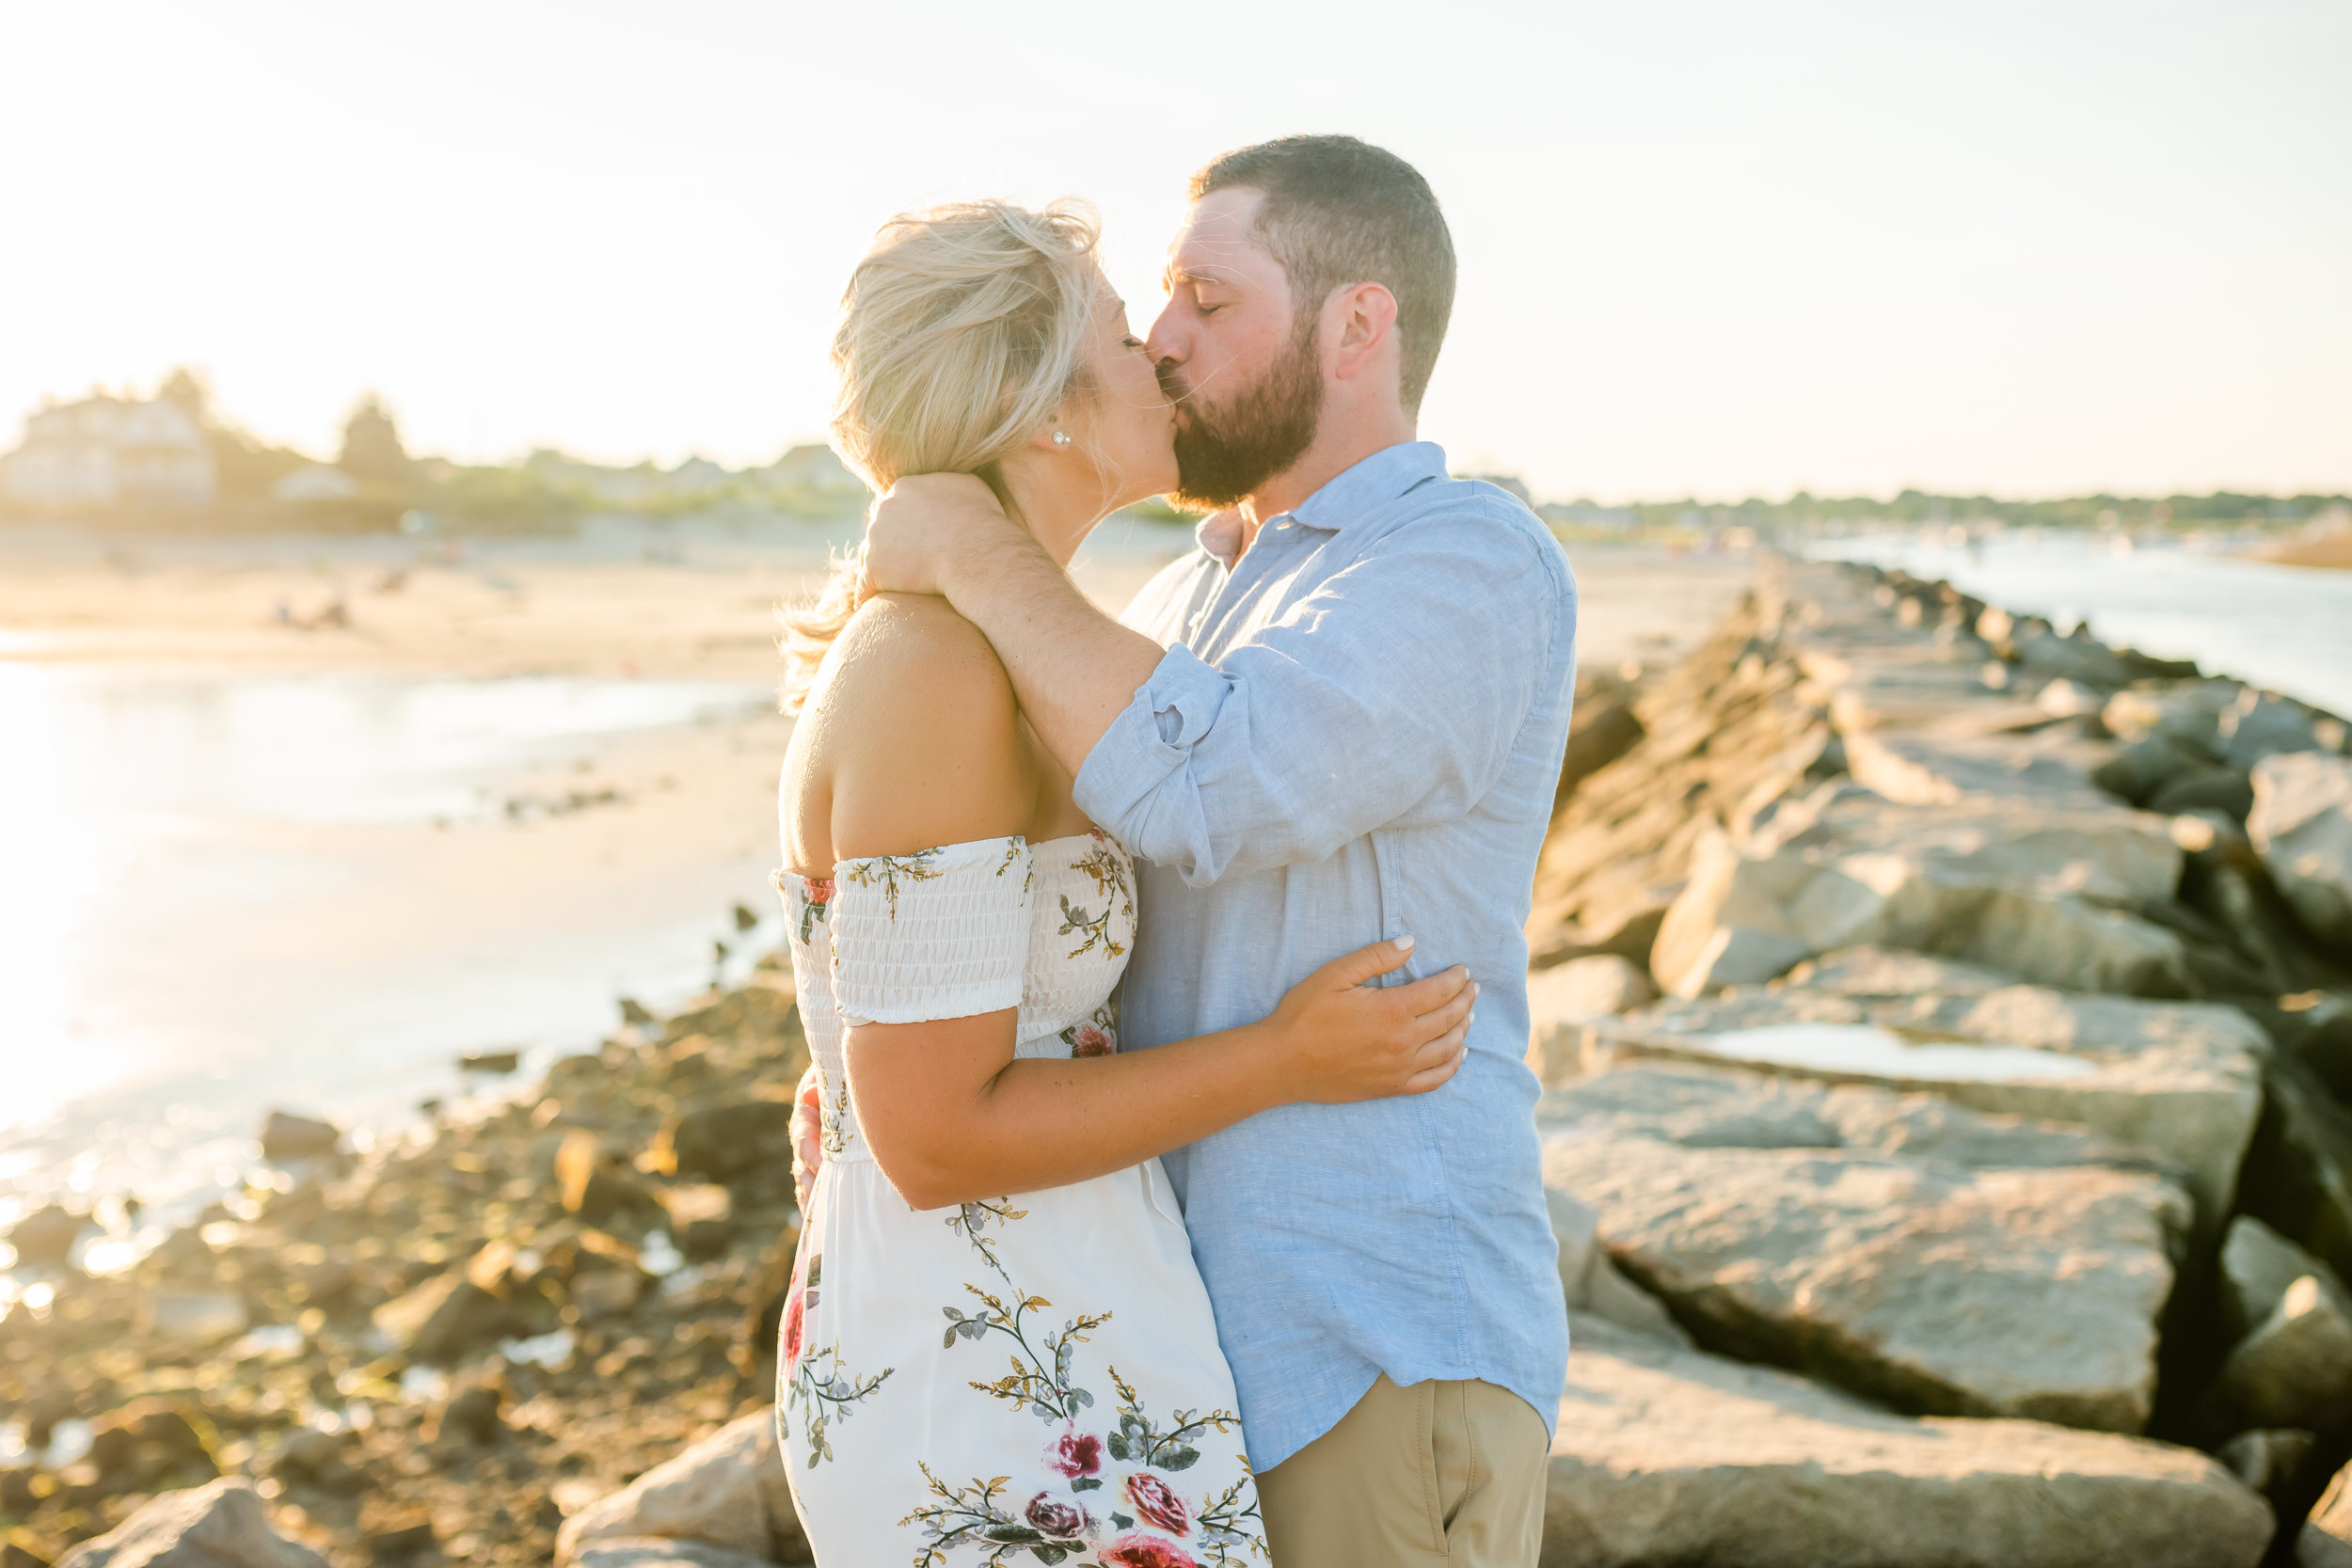 Erica + Keith Engagement Session-49.jpg